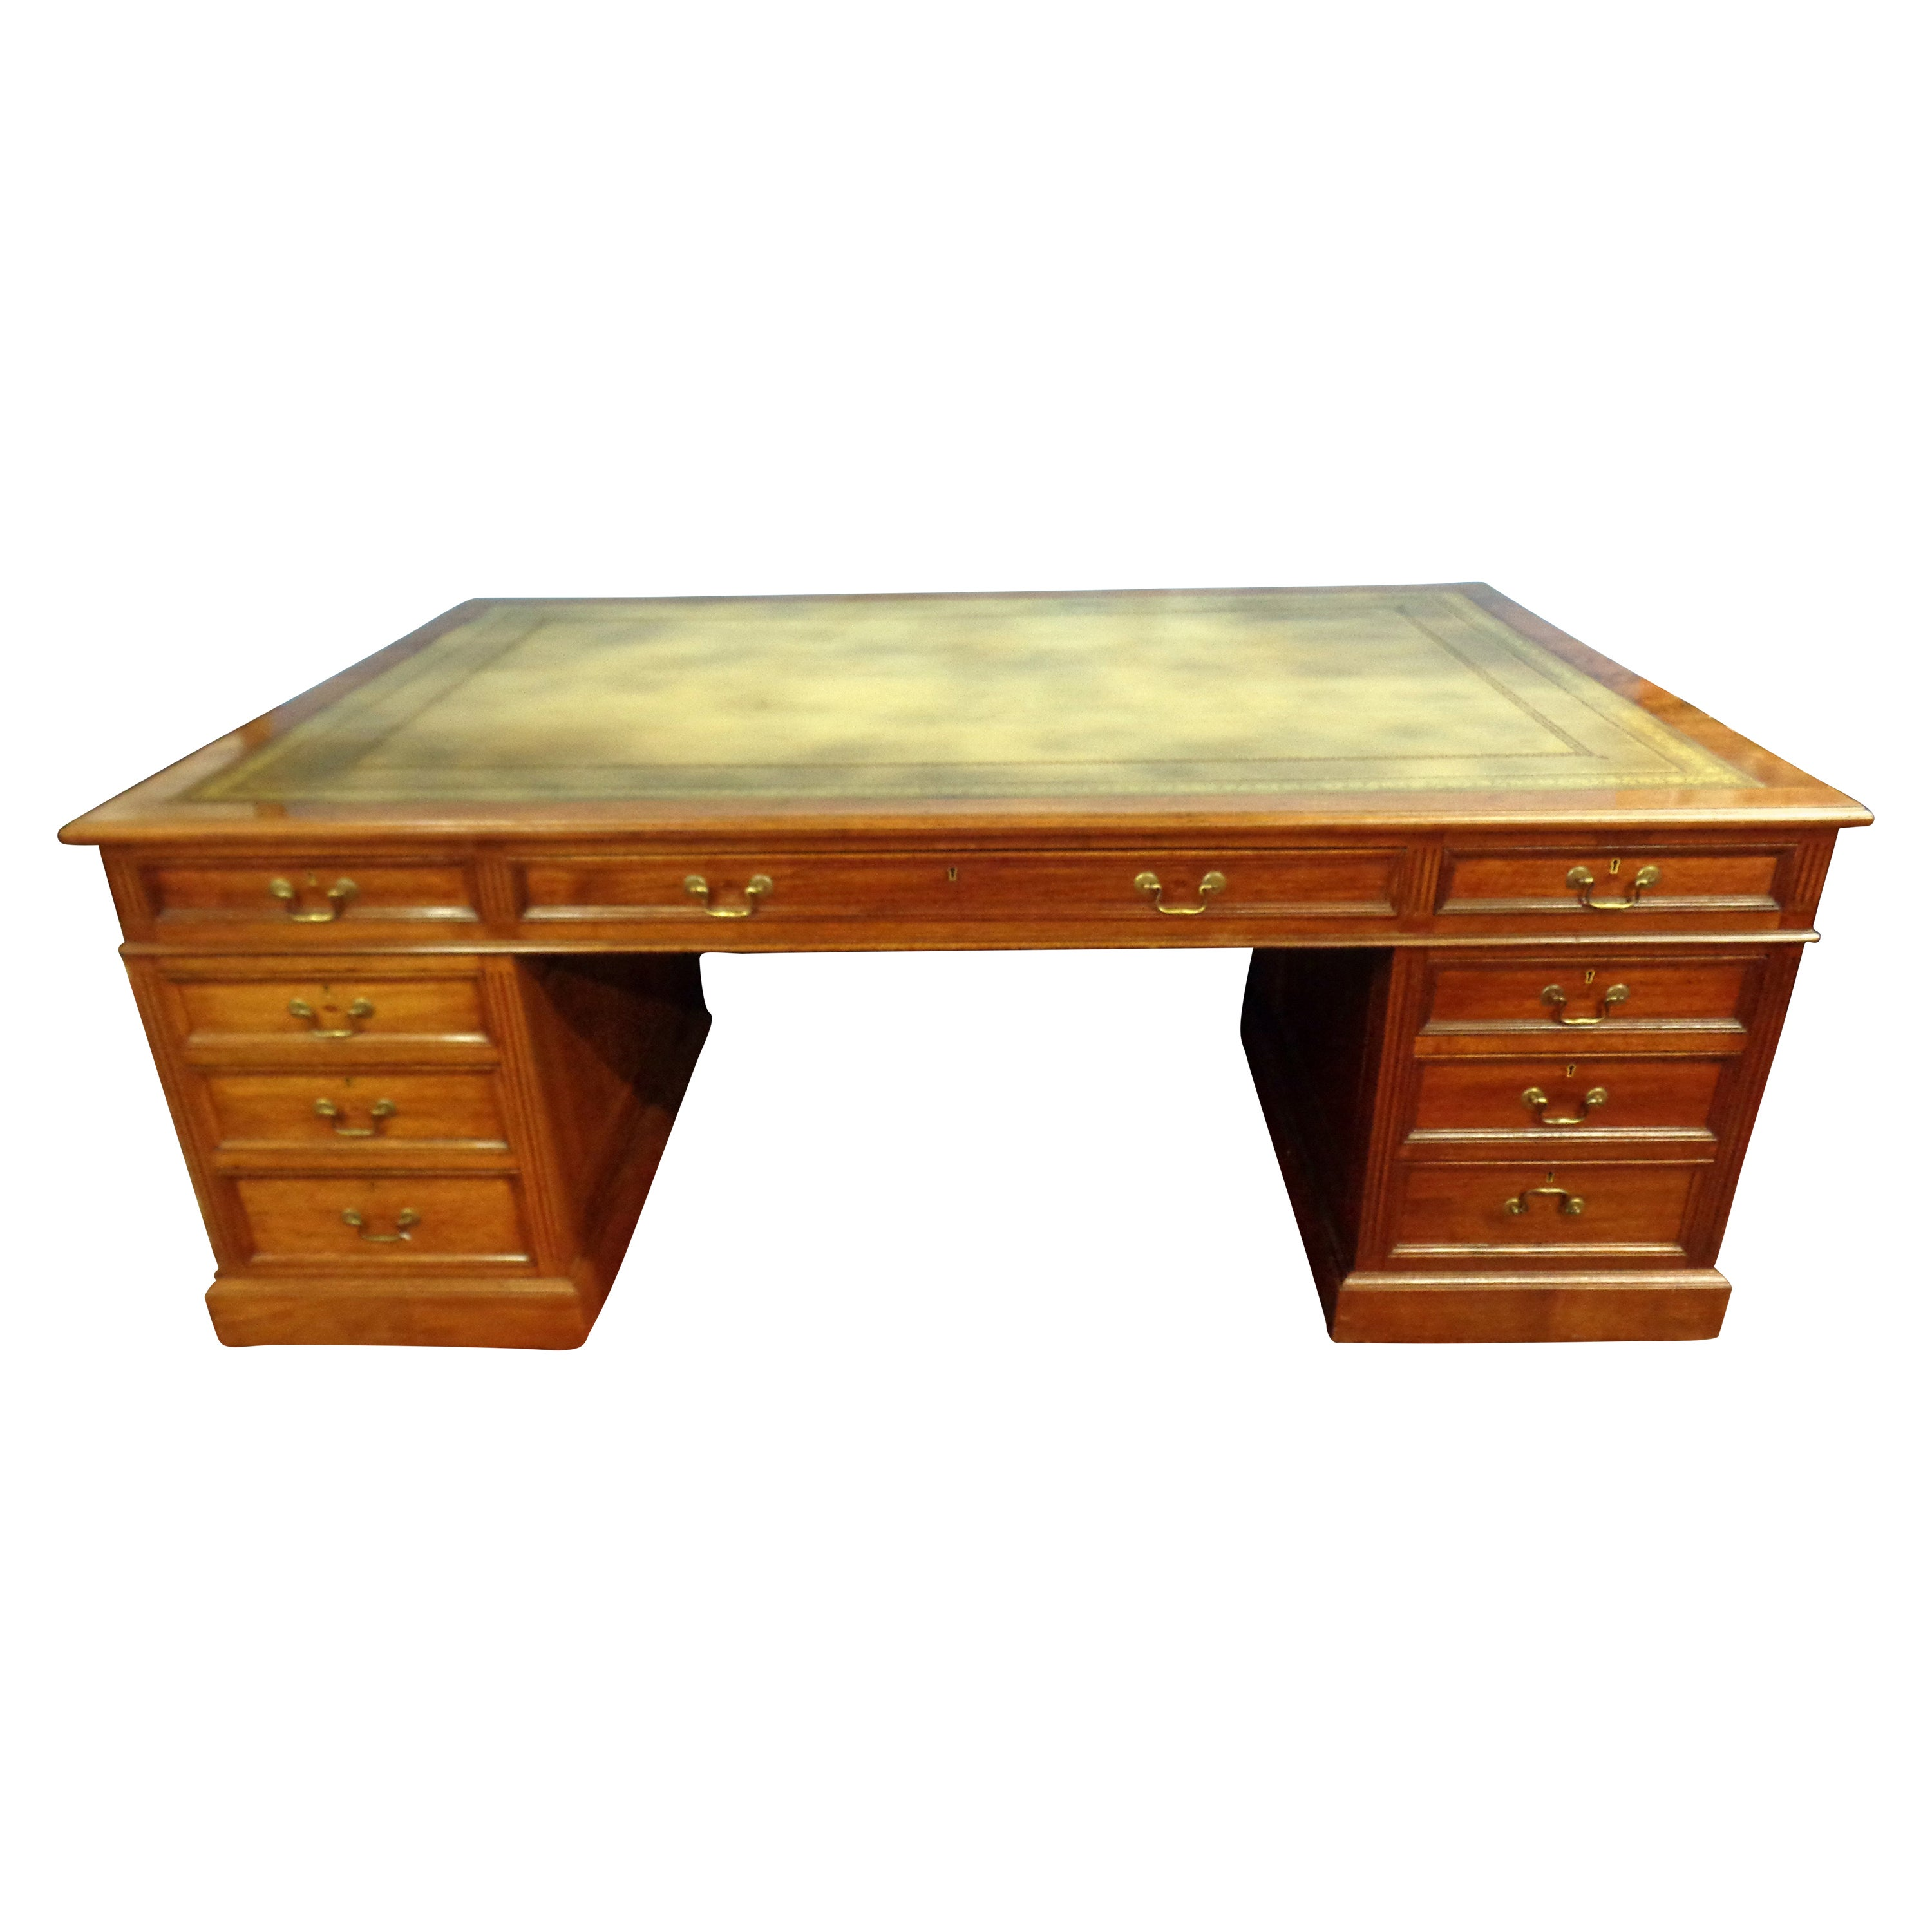 Signed English Double Sided Mahogany Partners Desk by Maple & Co.